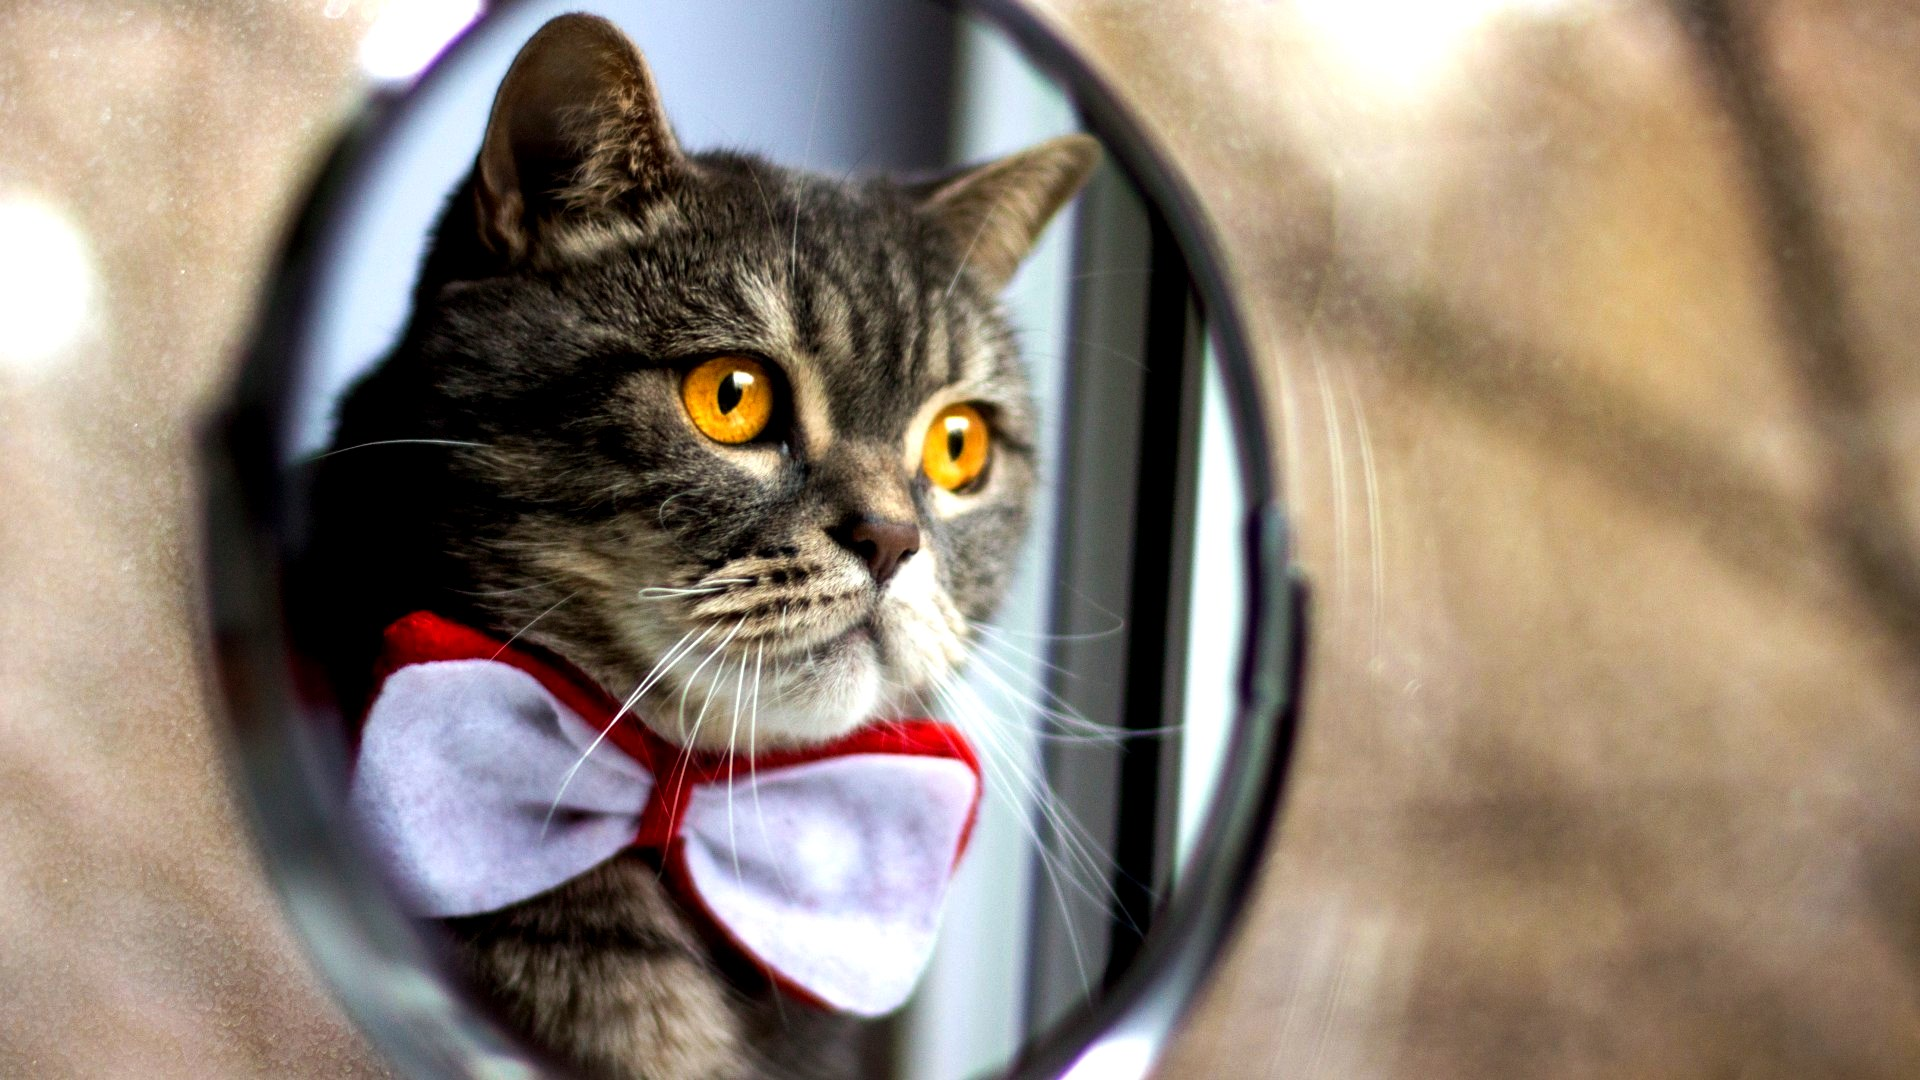 www_getbg_net_animals___cats_fashionable_cat_looking_in_the_mirror_097134_